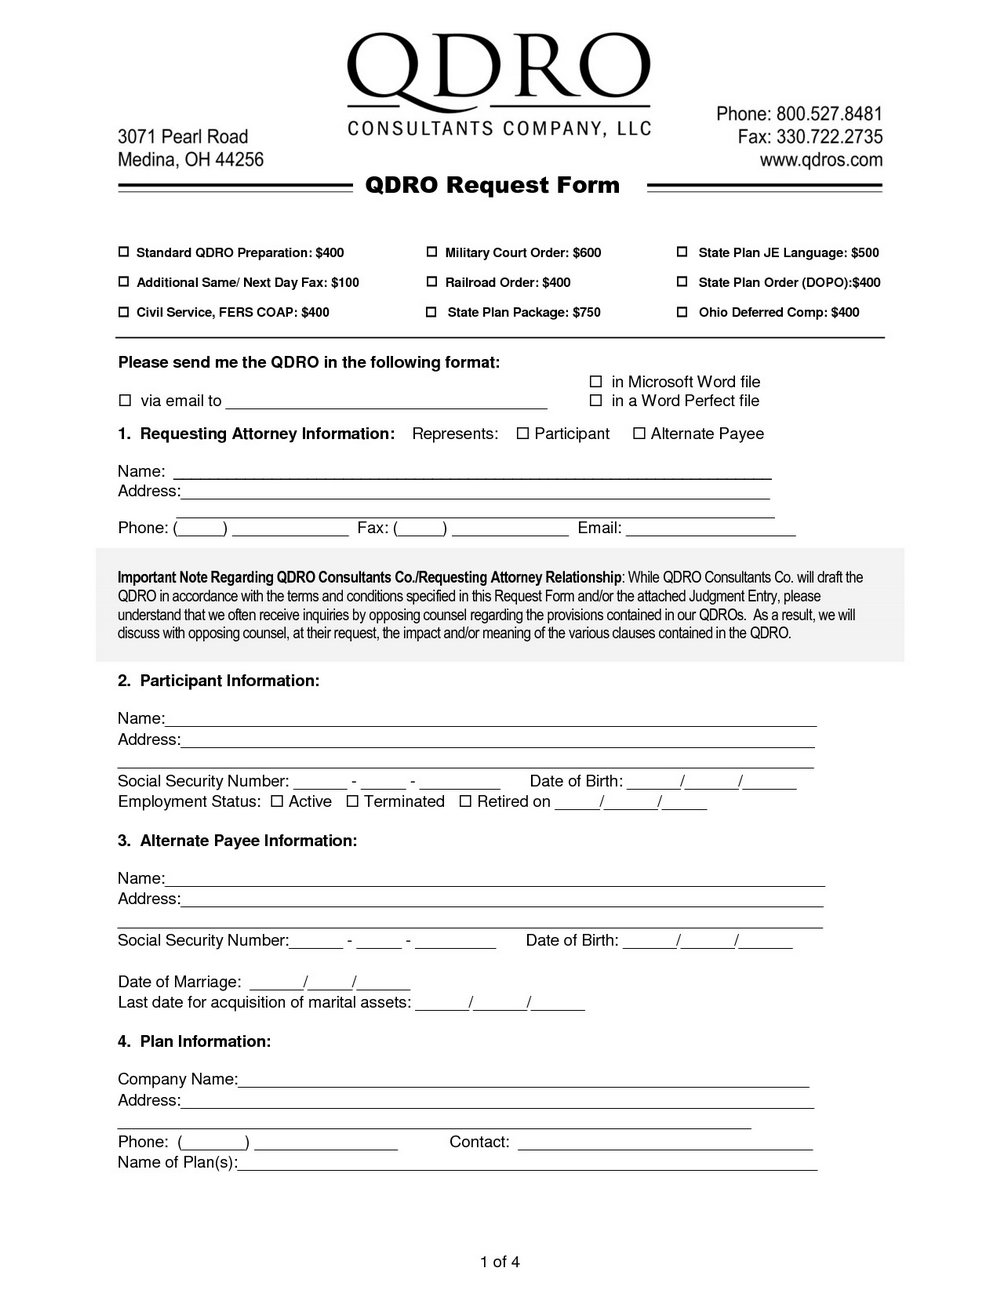 Free Qualified Domestic Relations Order Form